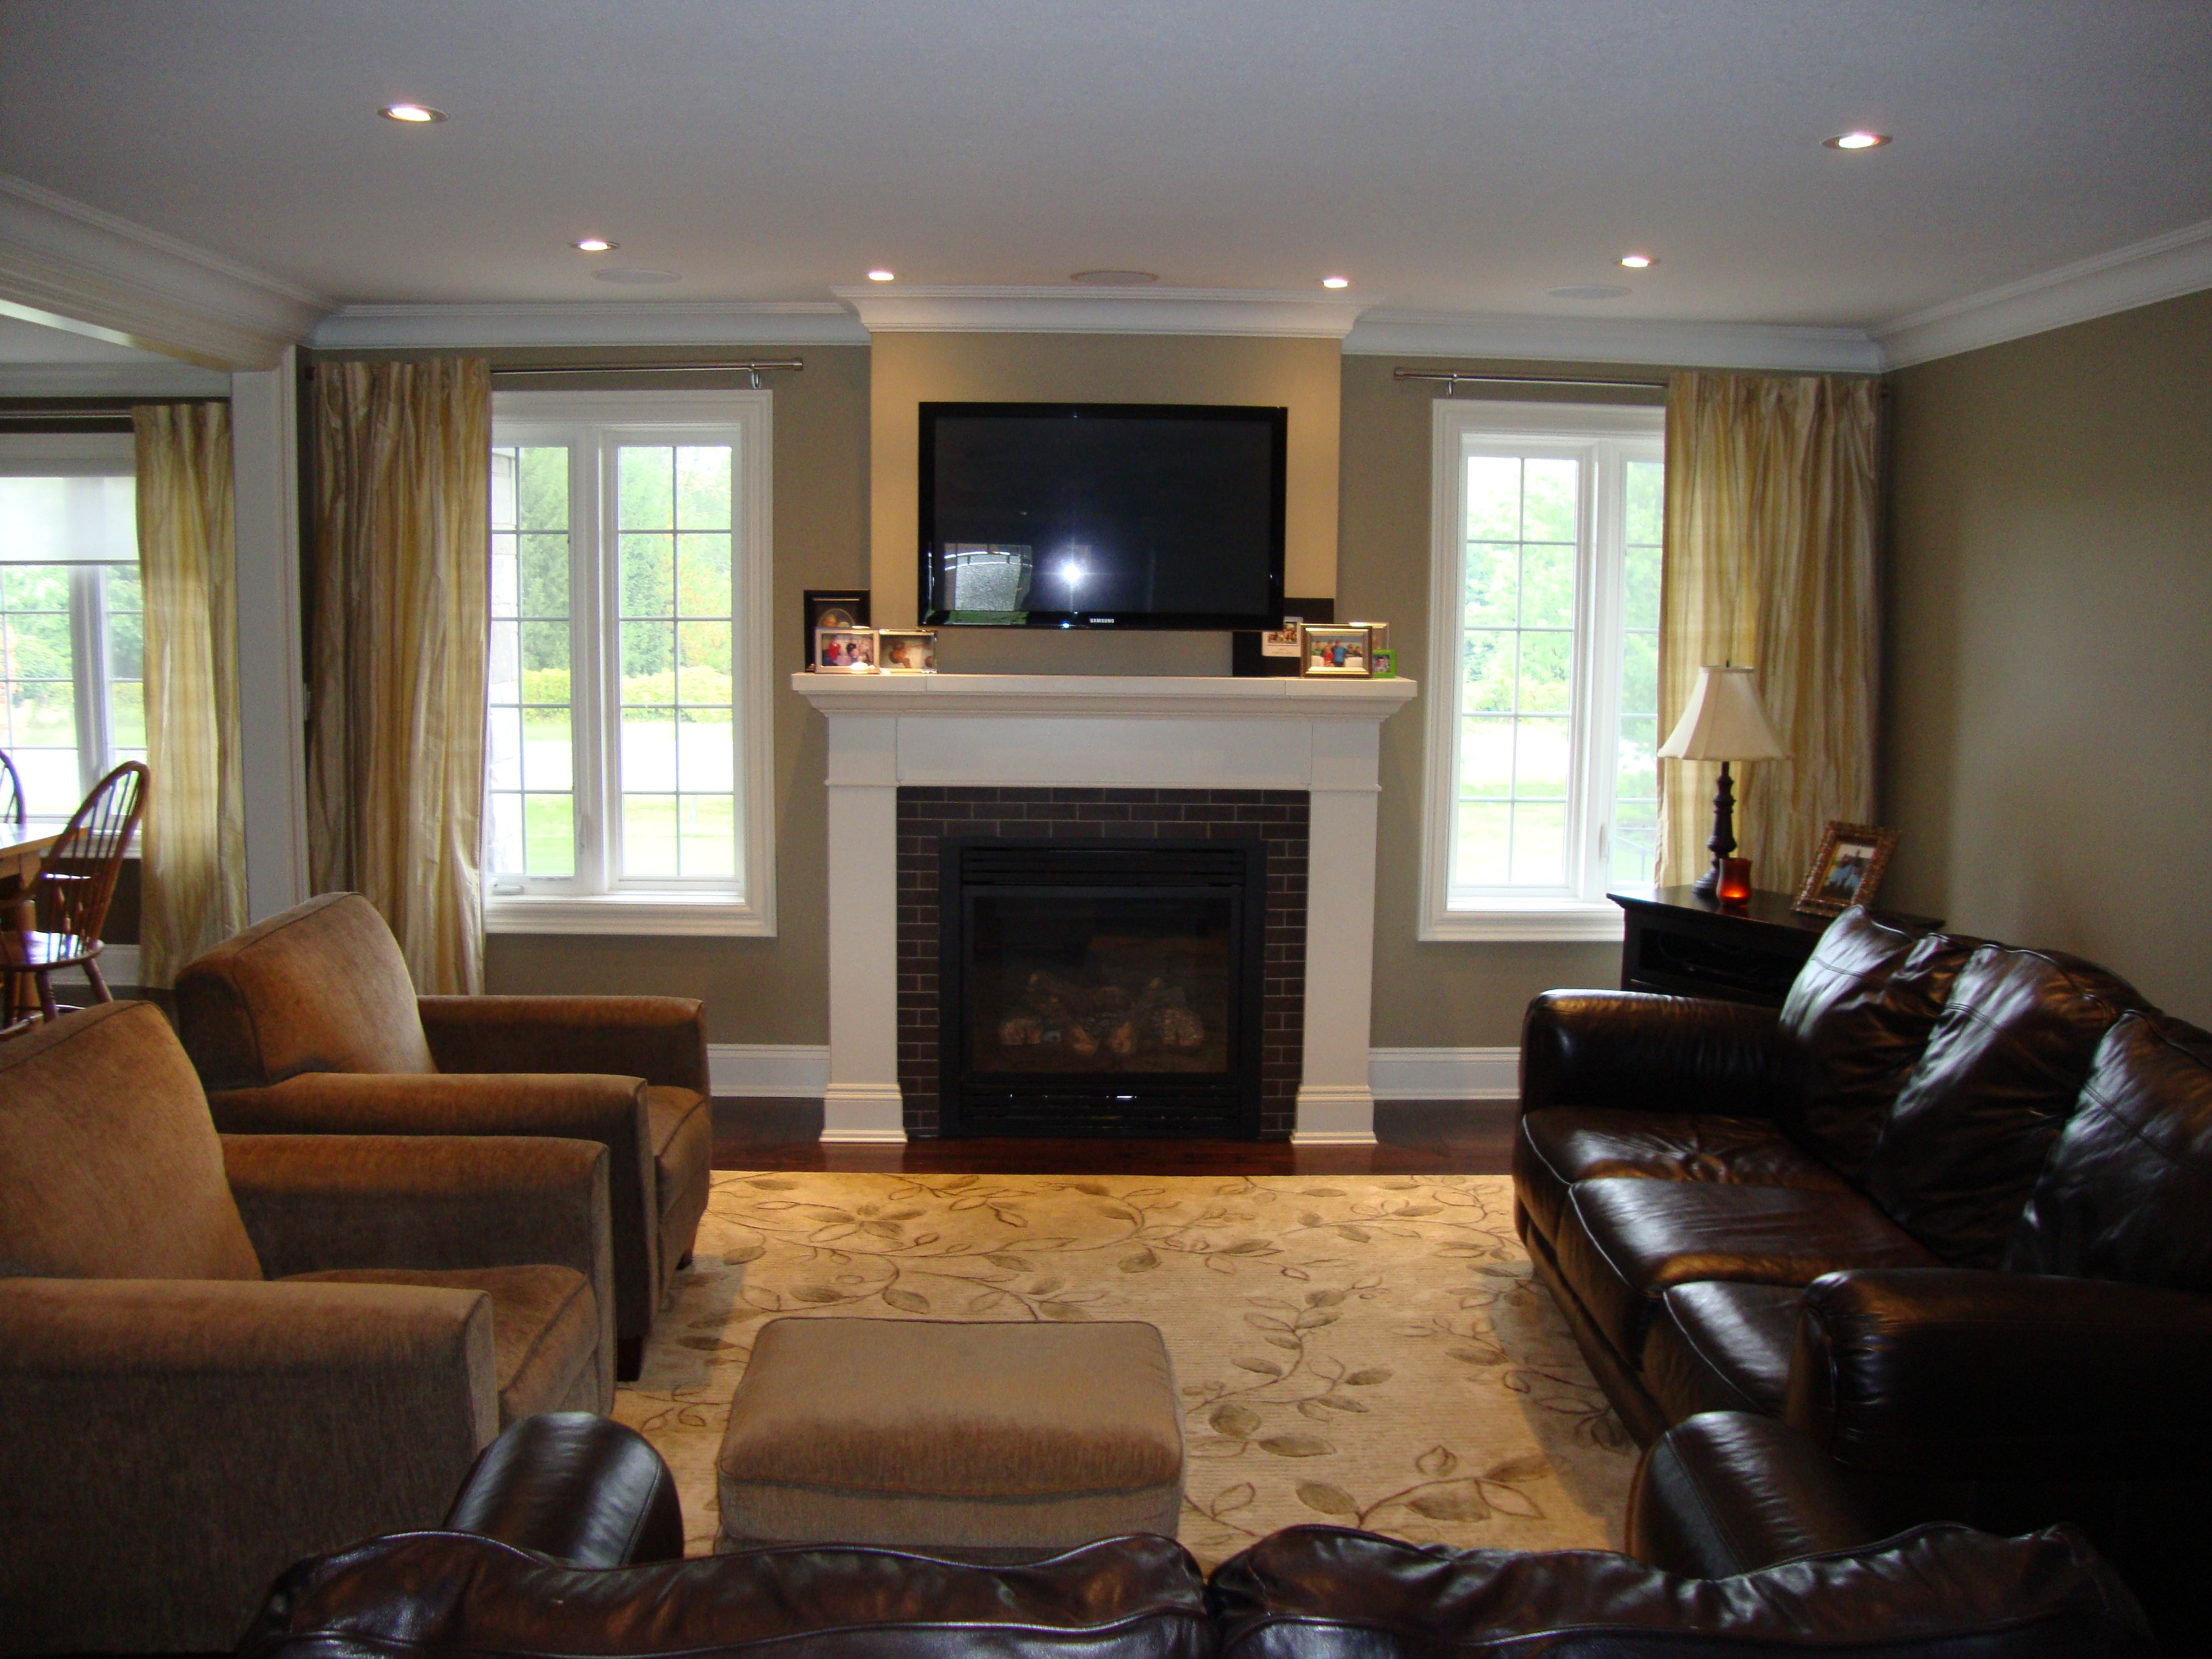 Lighting Basement Washroom Stairs: Great Room With Windows Flanking Fireplace, Furniture